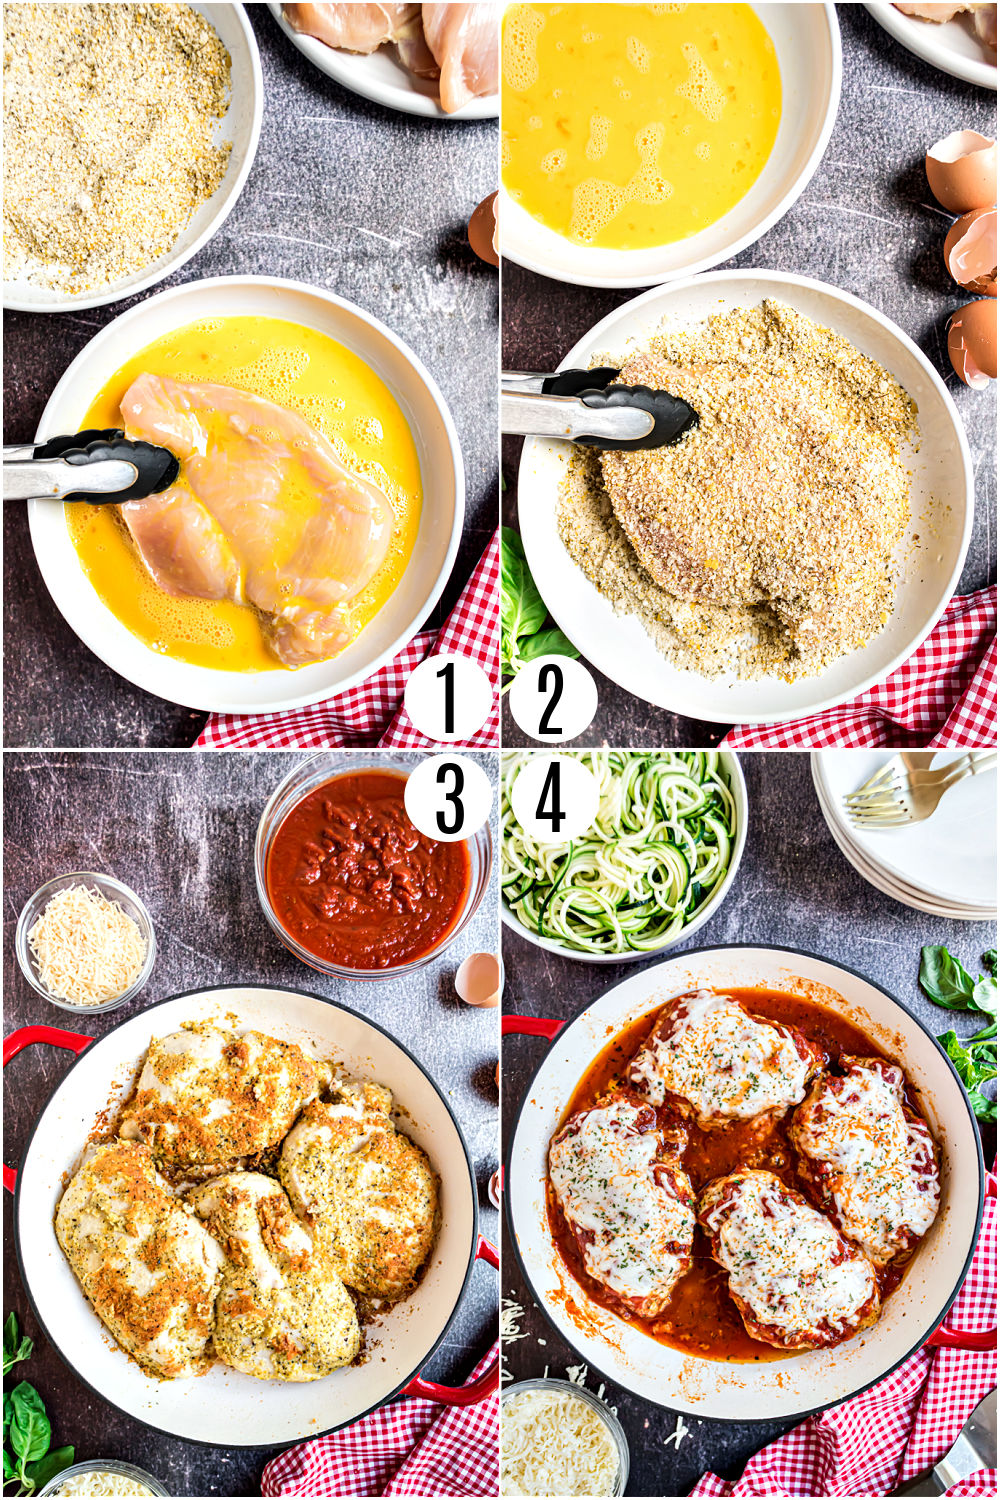 Step by step photos showing how to make gluten free chicken parmesan.